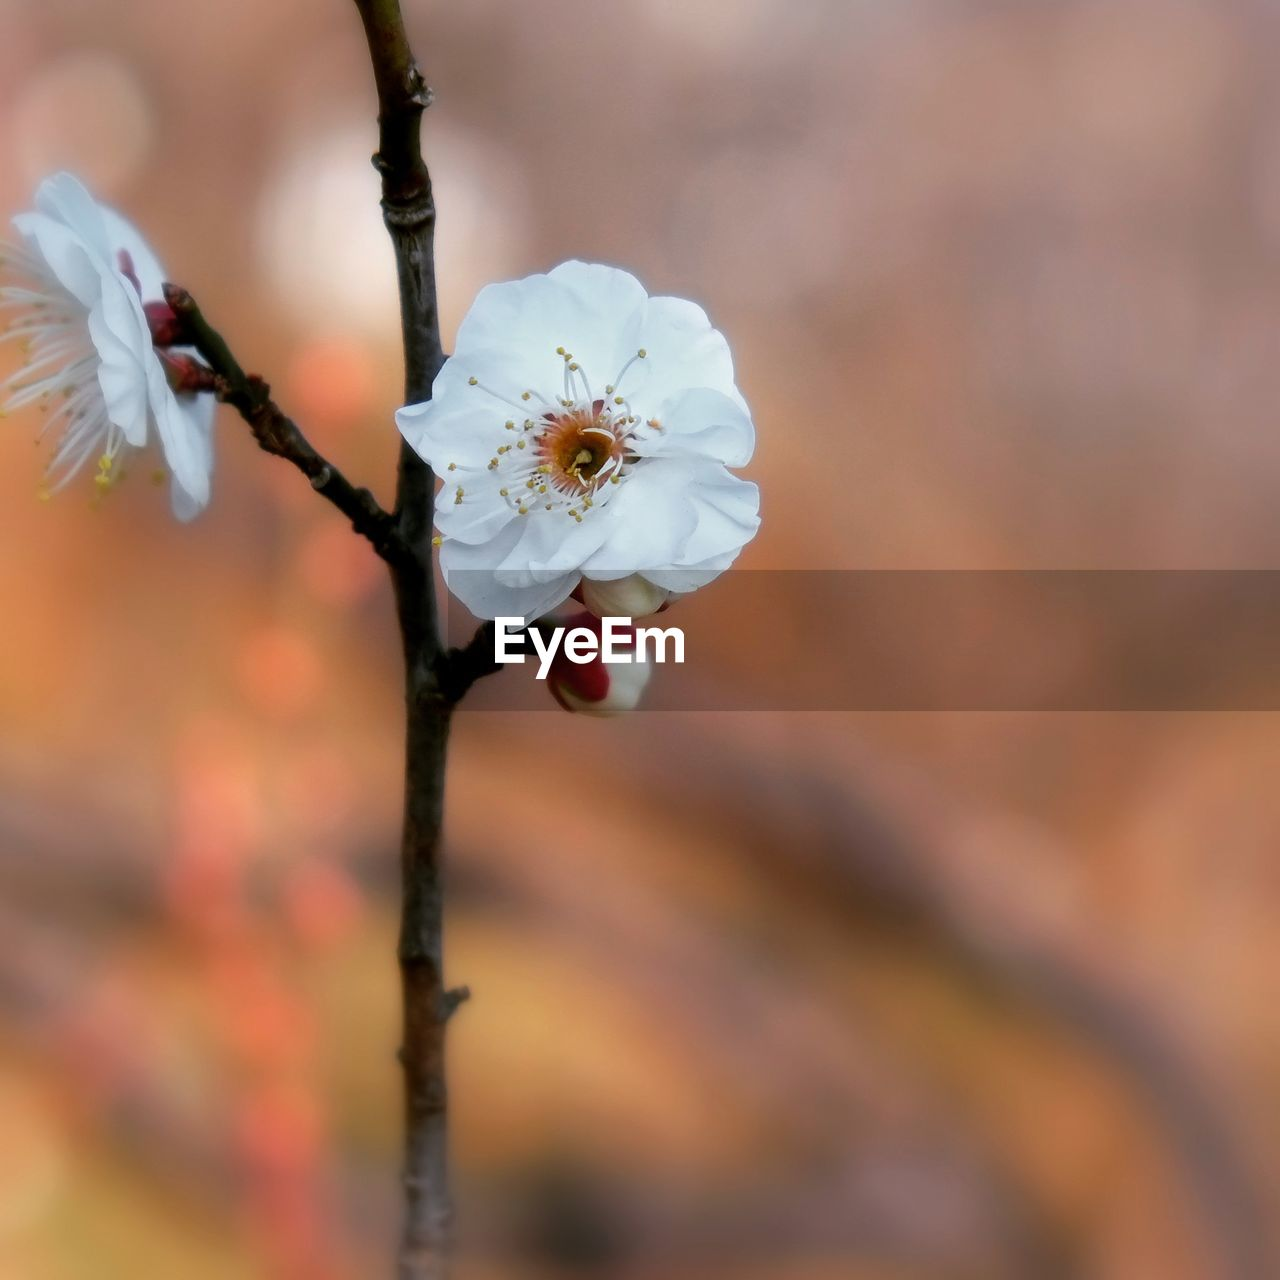 flower, fragility, white color, nature, beauty in nature, petal, focus on foreground, growth, close-up, flower head, freshness, no people, outdoors, plum blossom, day, branch, tree